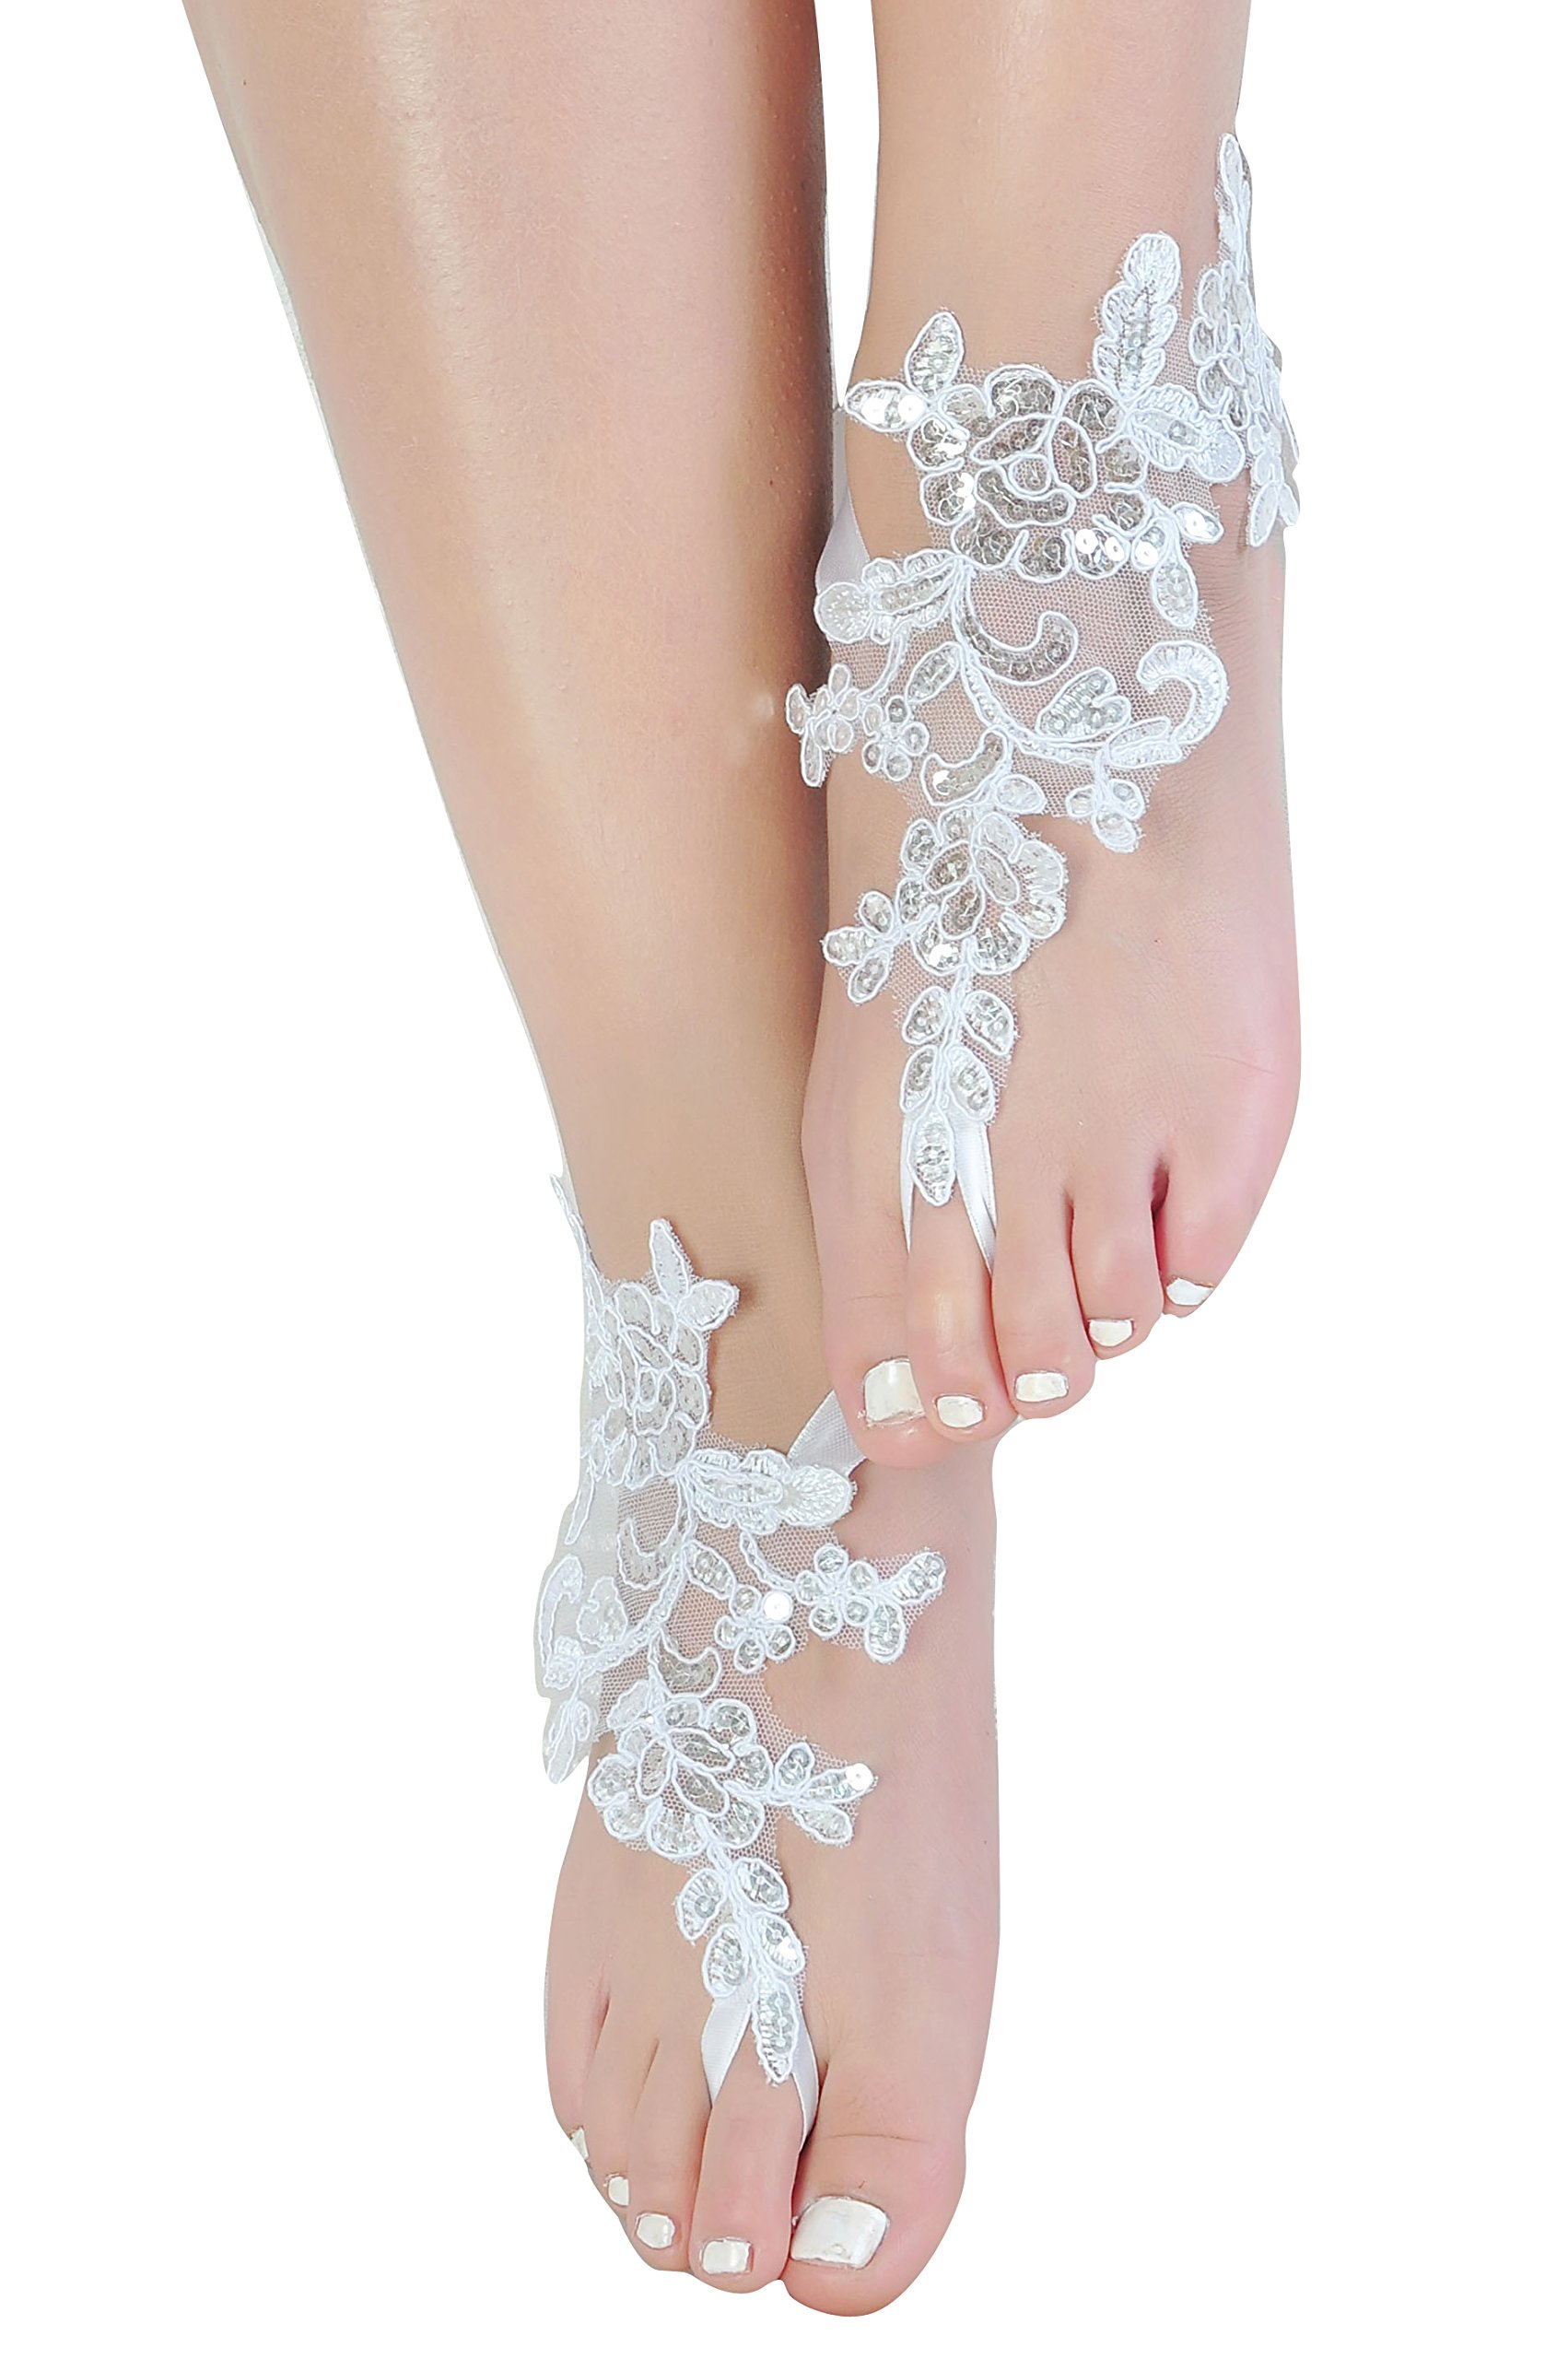 Destination Wedding Barefoot Sandals,Lace Anklets Wedding,Prom Party Bangle